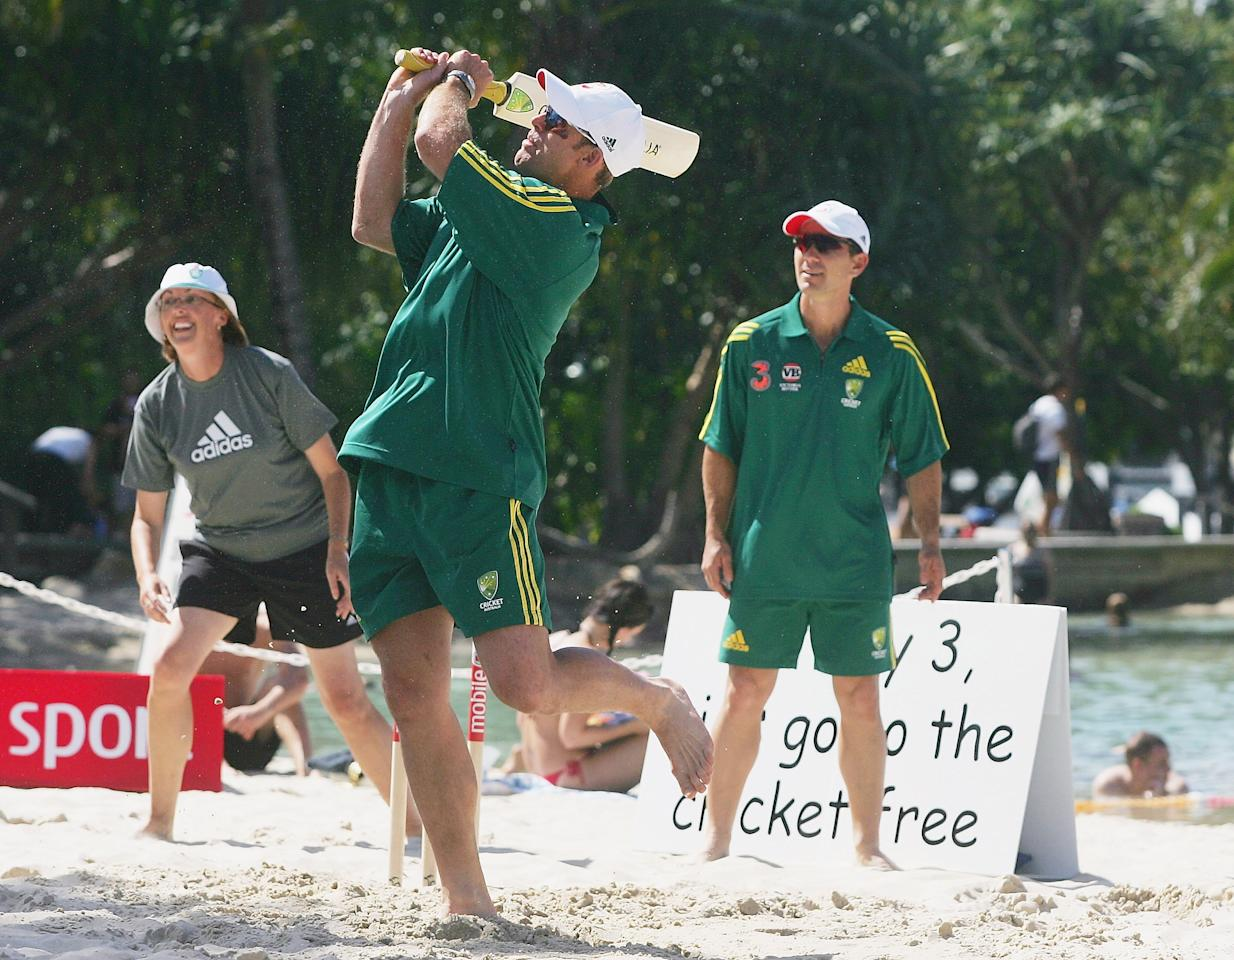 BRISBANE, QSL - OCTOBER 31:  (L-R) Matthew Hayden and Justin Langer of Australia play beach cricket during the 2005/2006 International Season Launch held at the Streets Beach at Southbank on October 31, 2005 in Brisbane, Australia.  (Photo by Hamish Blair/Getty Images)